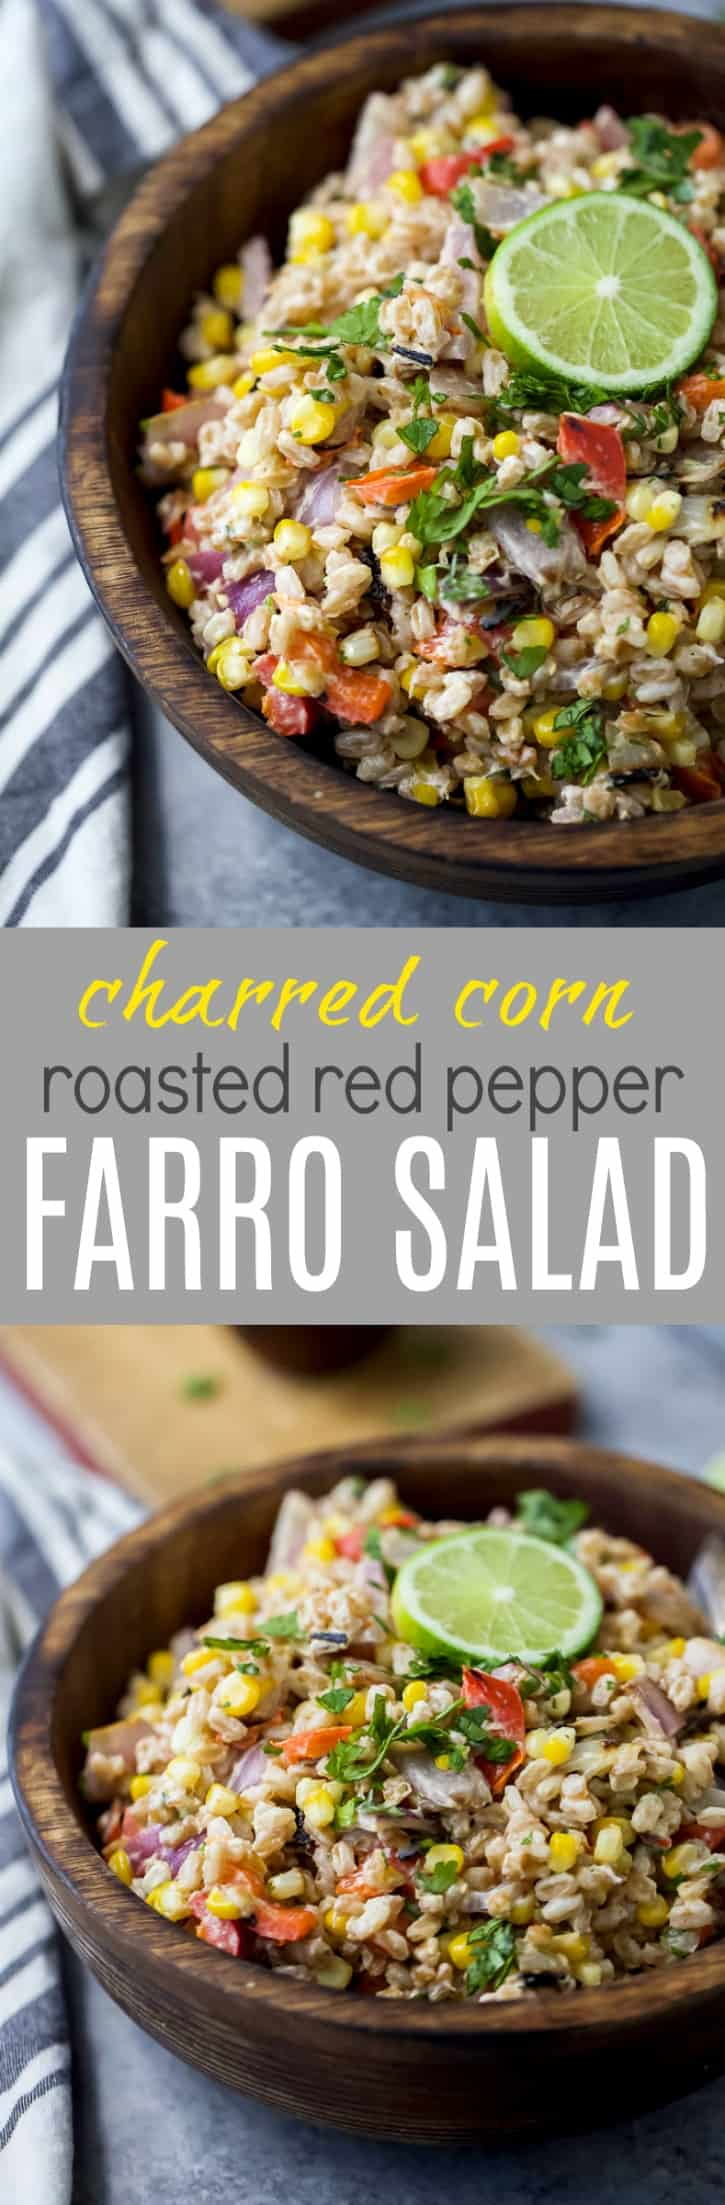 Charred Corn Roasted Red Pepper Farro Salad in a wooden bowl